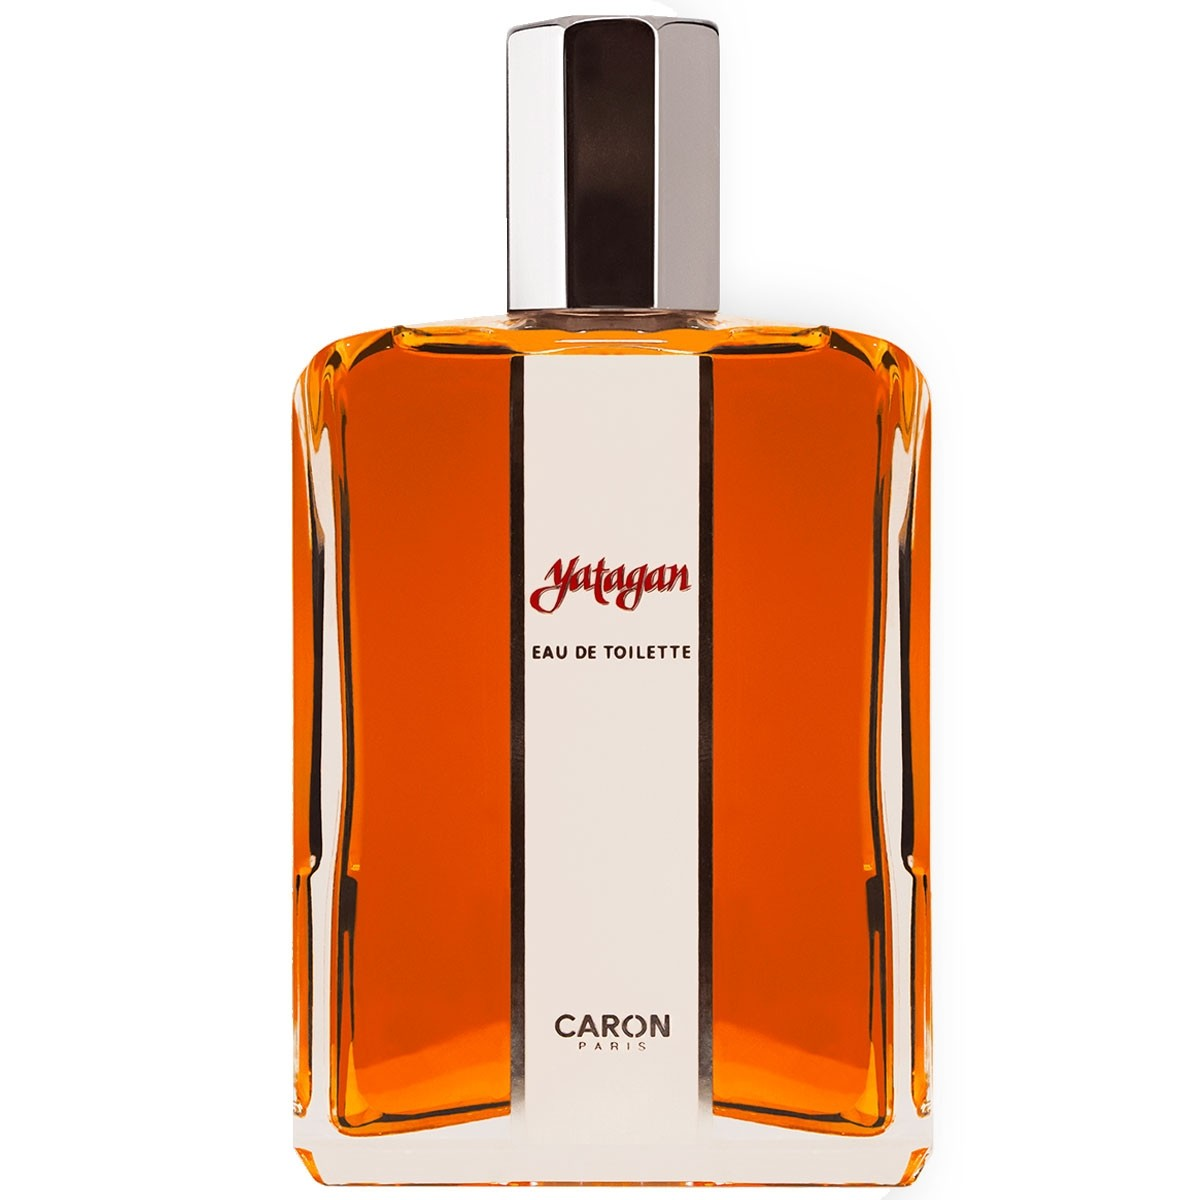 Afbeelding van Caron Yatagan 125 ml eau de toilette spray